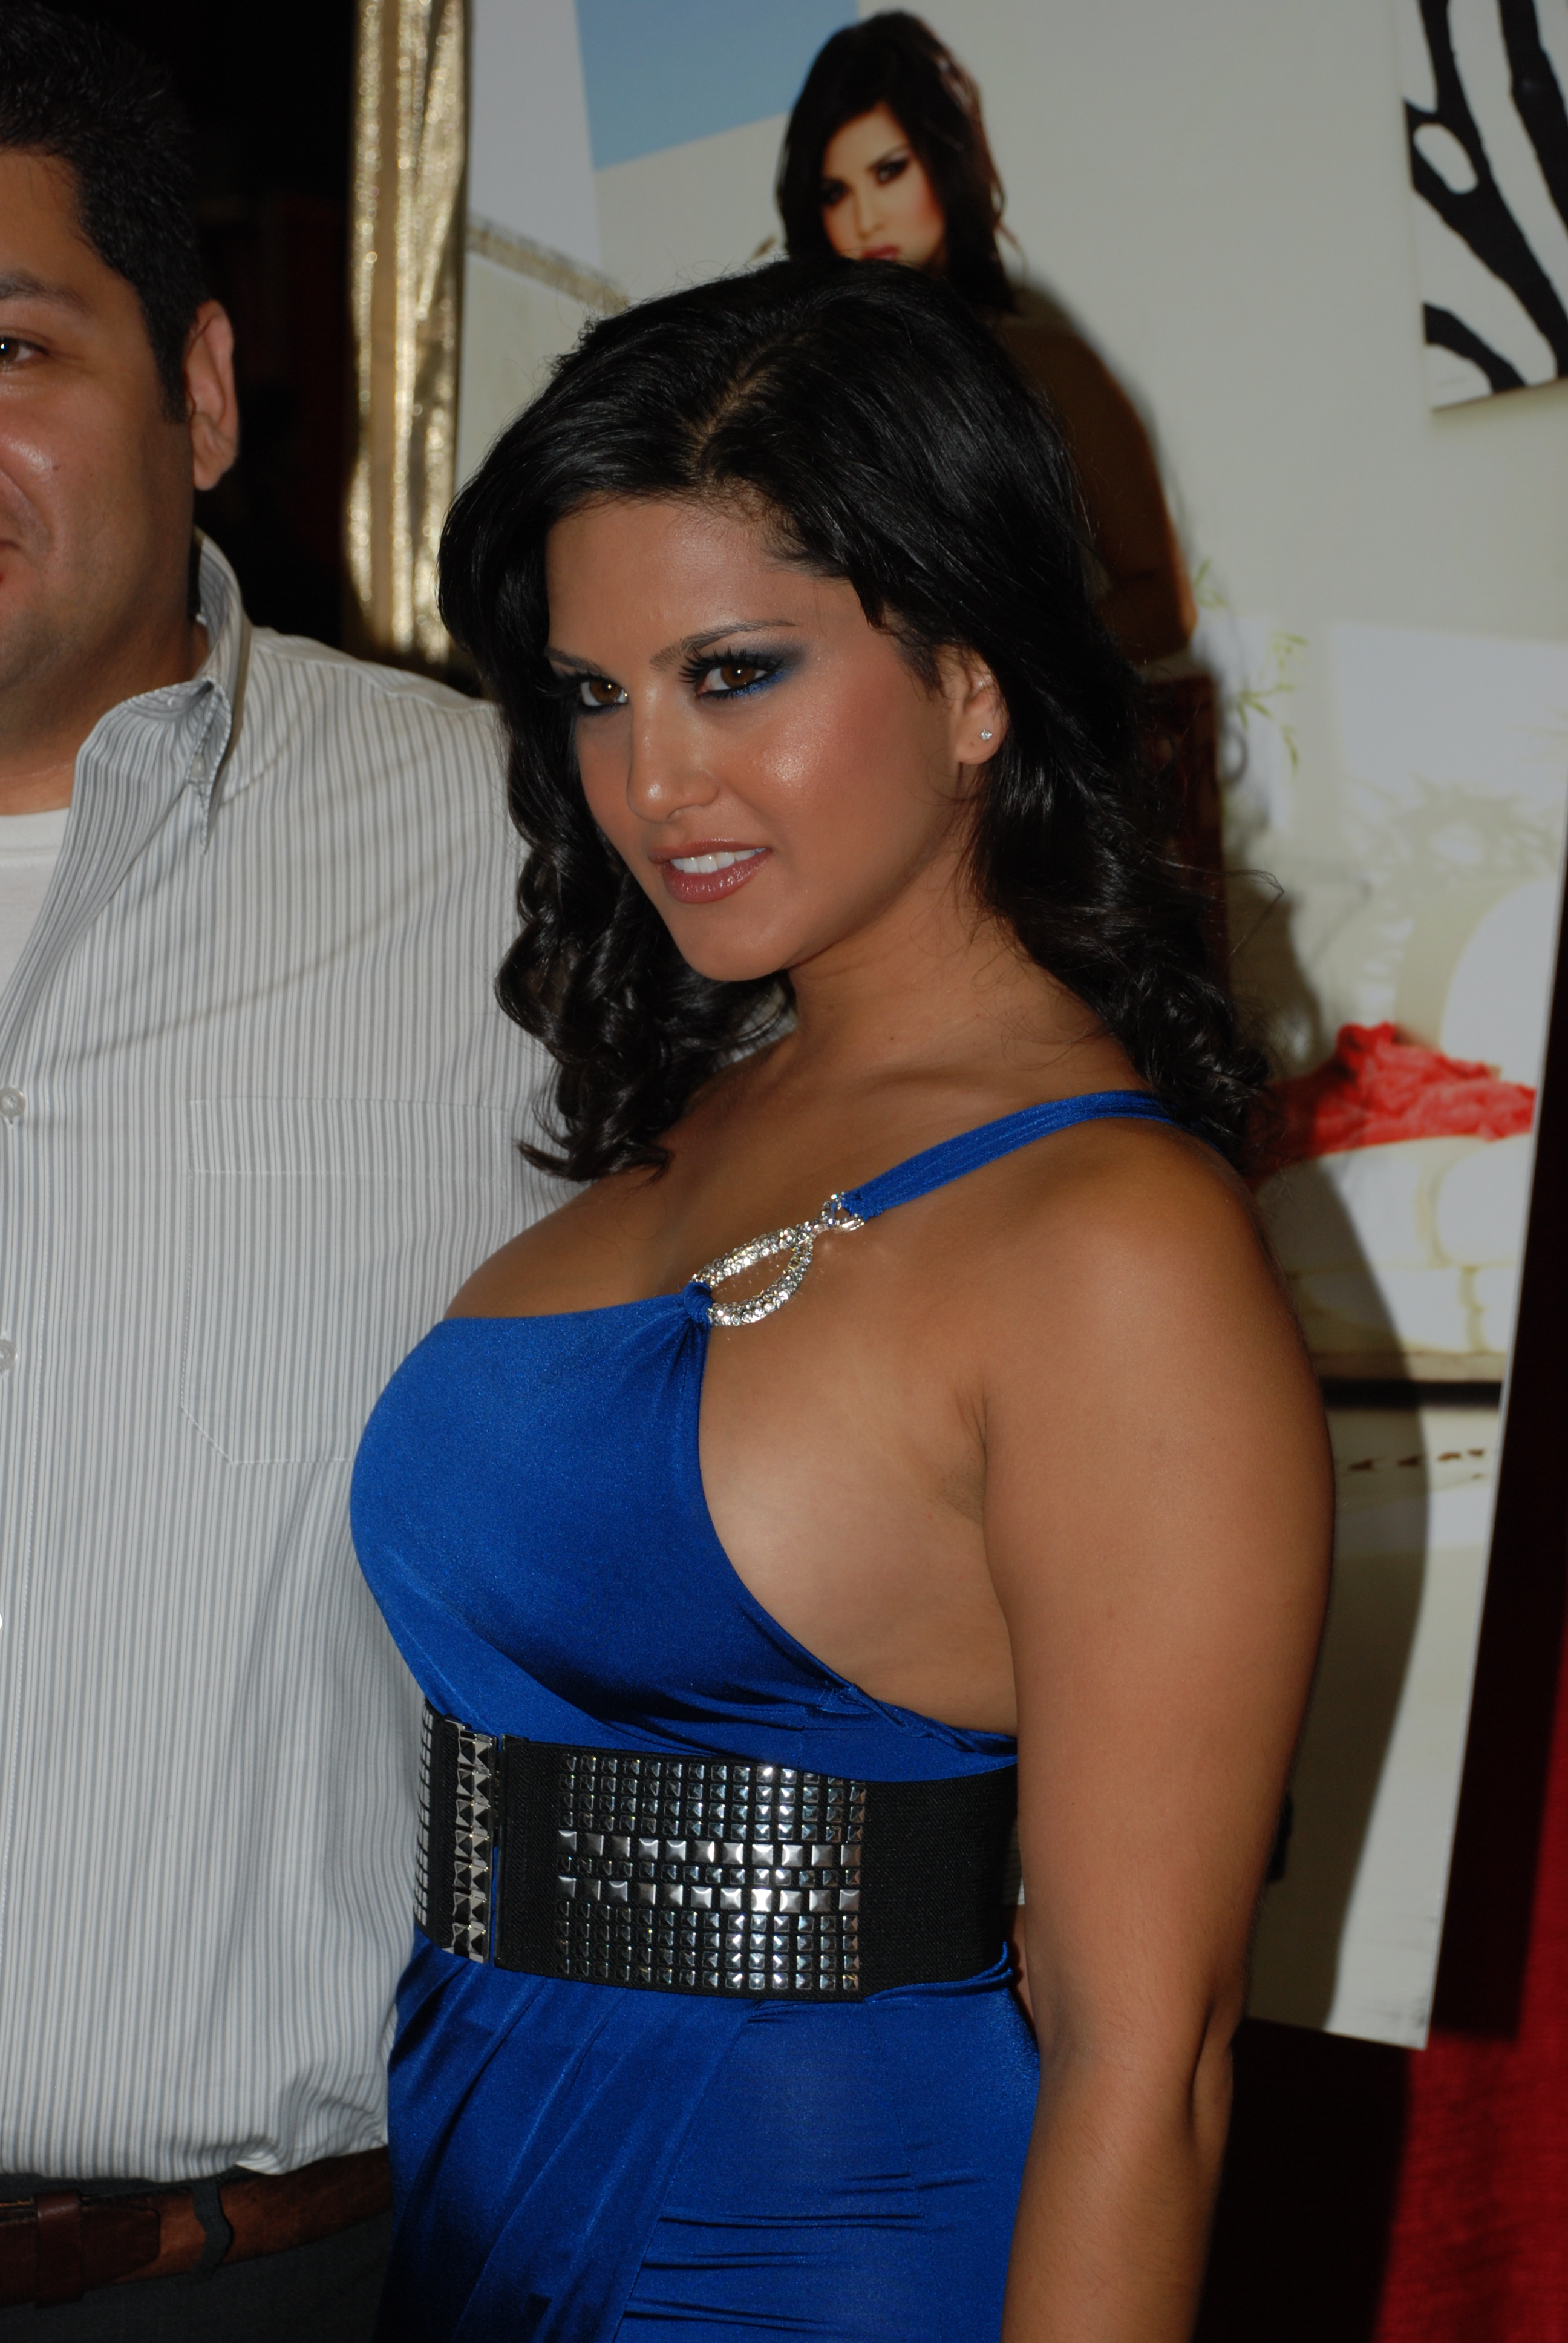 file:sunny leone at erotica la 2009 3 - wikimedia commons